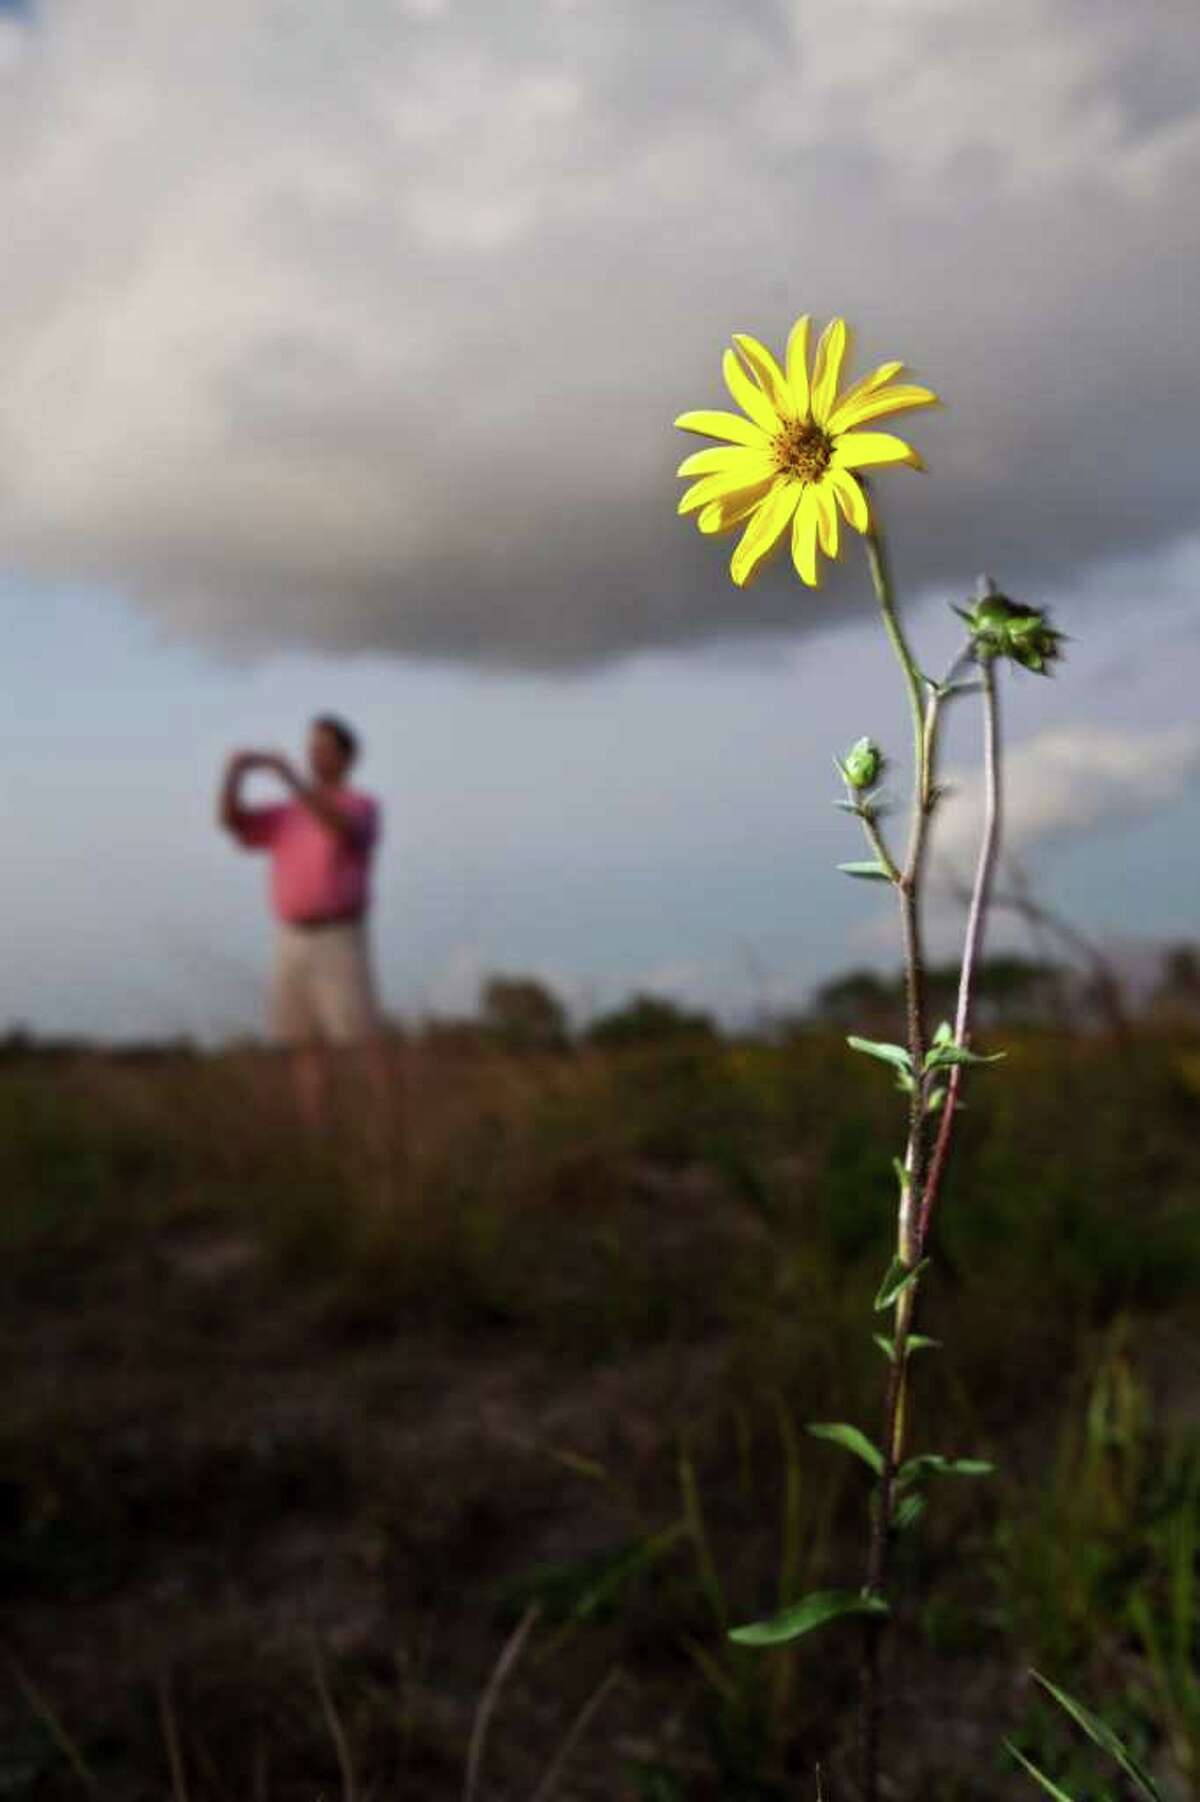 (Eric Kayne/For the Chronicle) XXXXXX: Rosinweed stands as plant enthusiasts scour a pristine coastal prairie off Spencer Highway Nov. 2, 2011 in Deer Park, TX. Their goal was to harvest plants and seeds. (Eric Kayne/For the Chronicle)